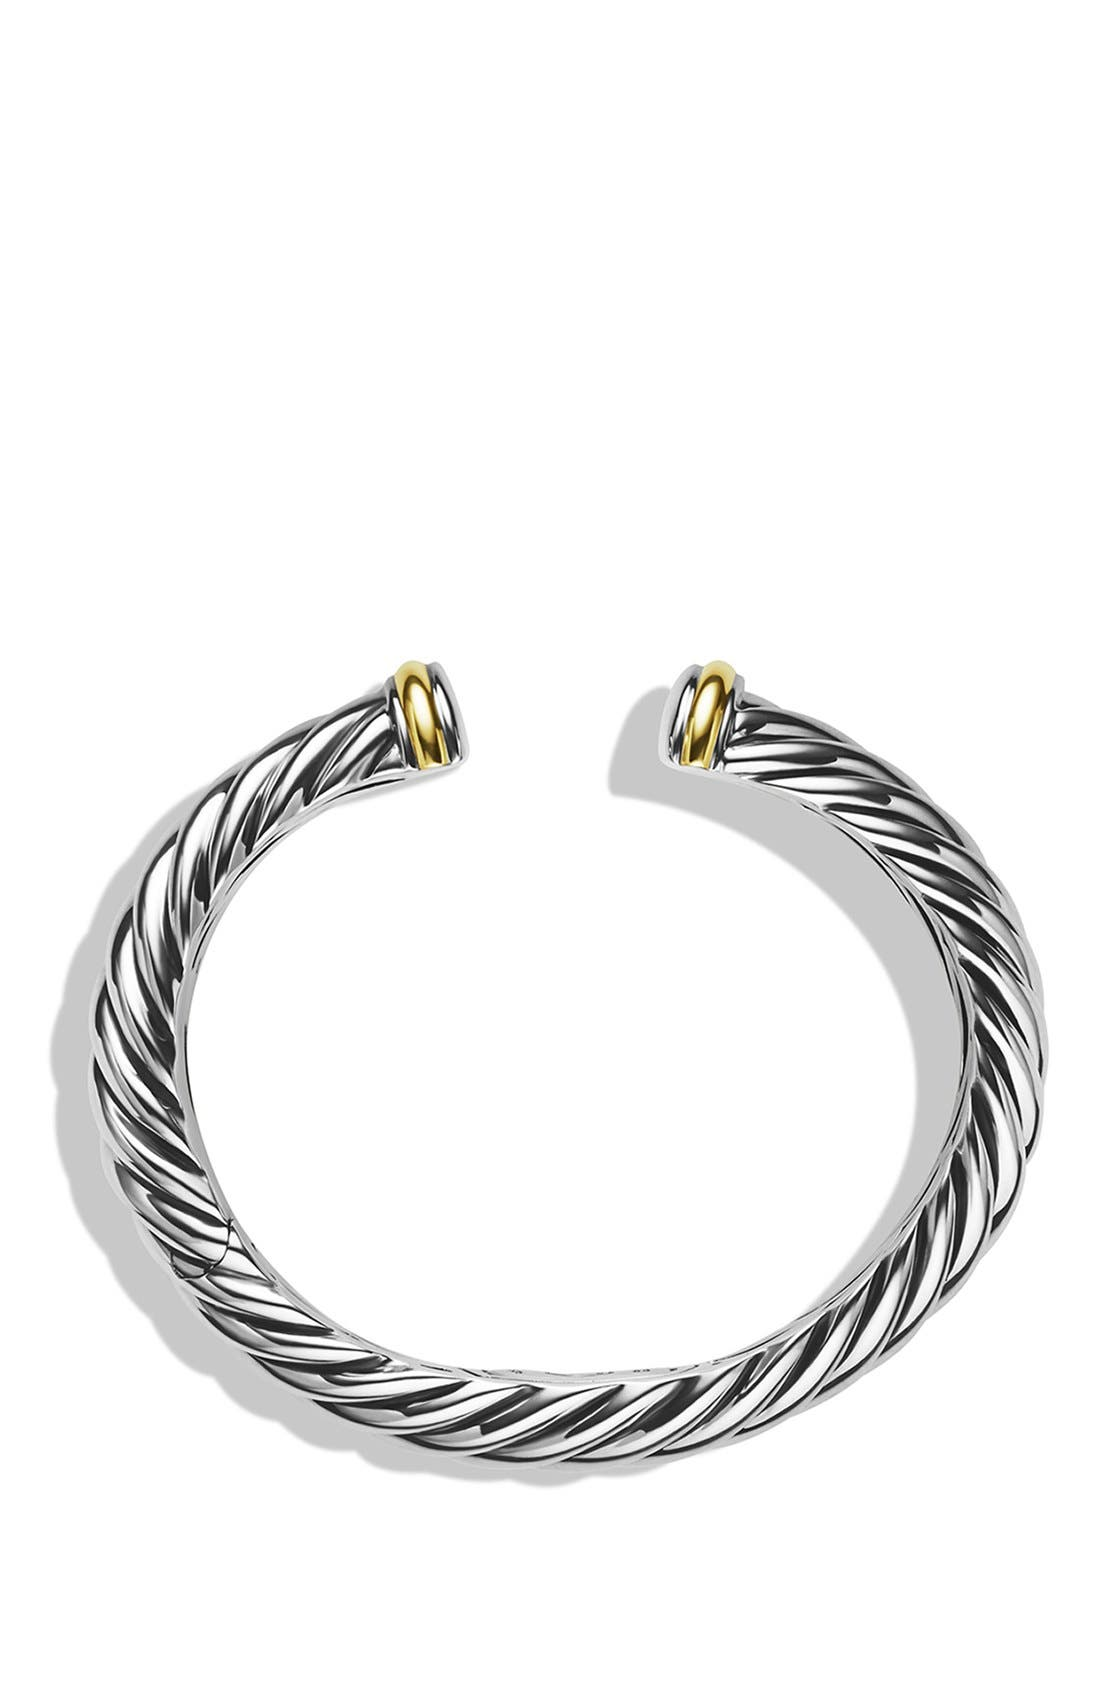 Alternate Image 2  - David Yurman 'Waverly' Bracelet with Gold